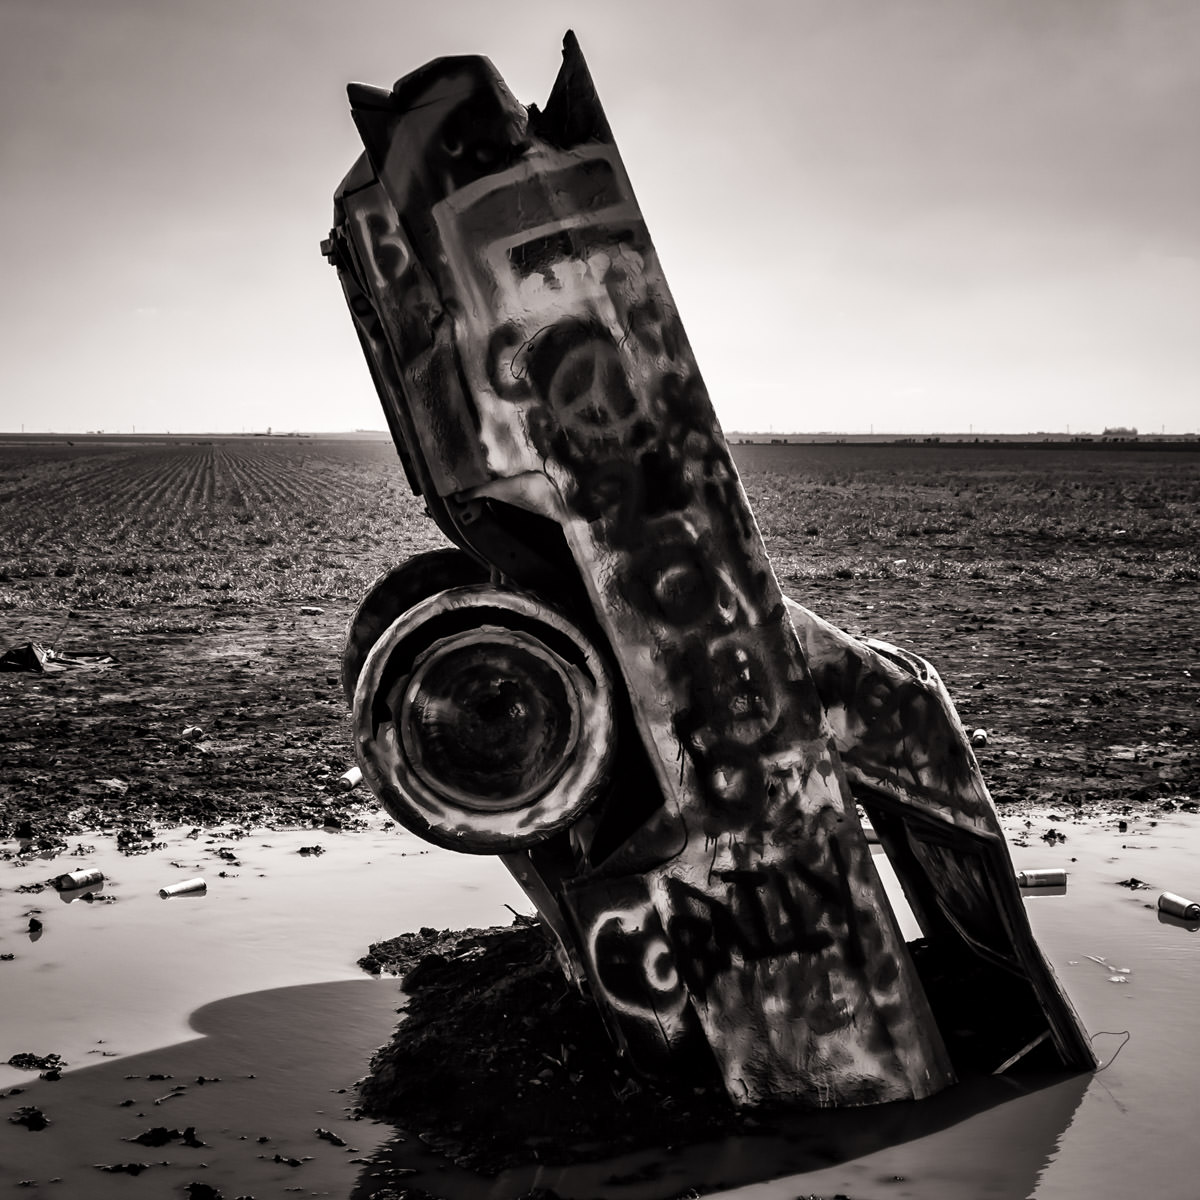 One of the seven Cadillacs at Amarillo, Texas' Cadillac Ranch, stuck nose-first in mud.